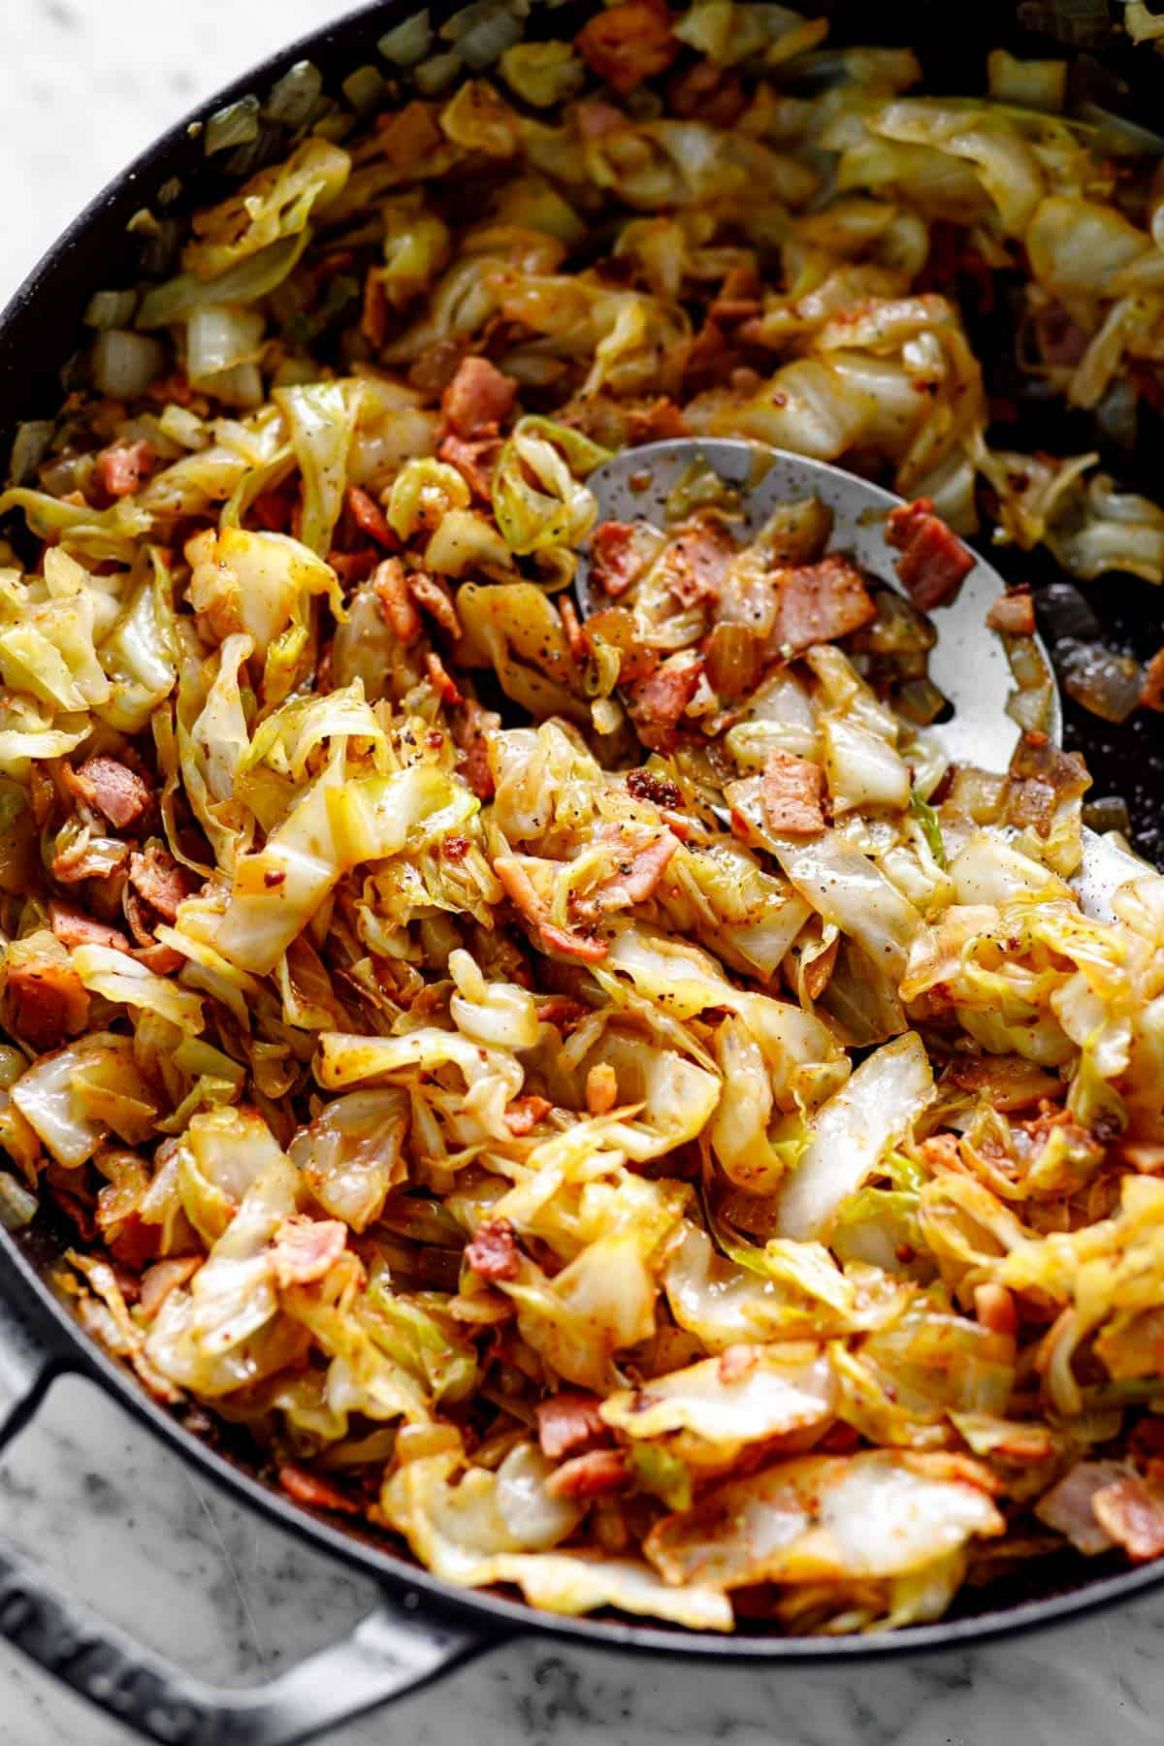 Fried Cabbage Recipe - Recipes Cooking Cabbage